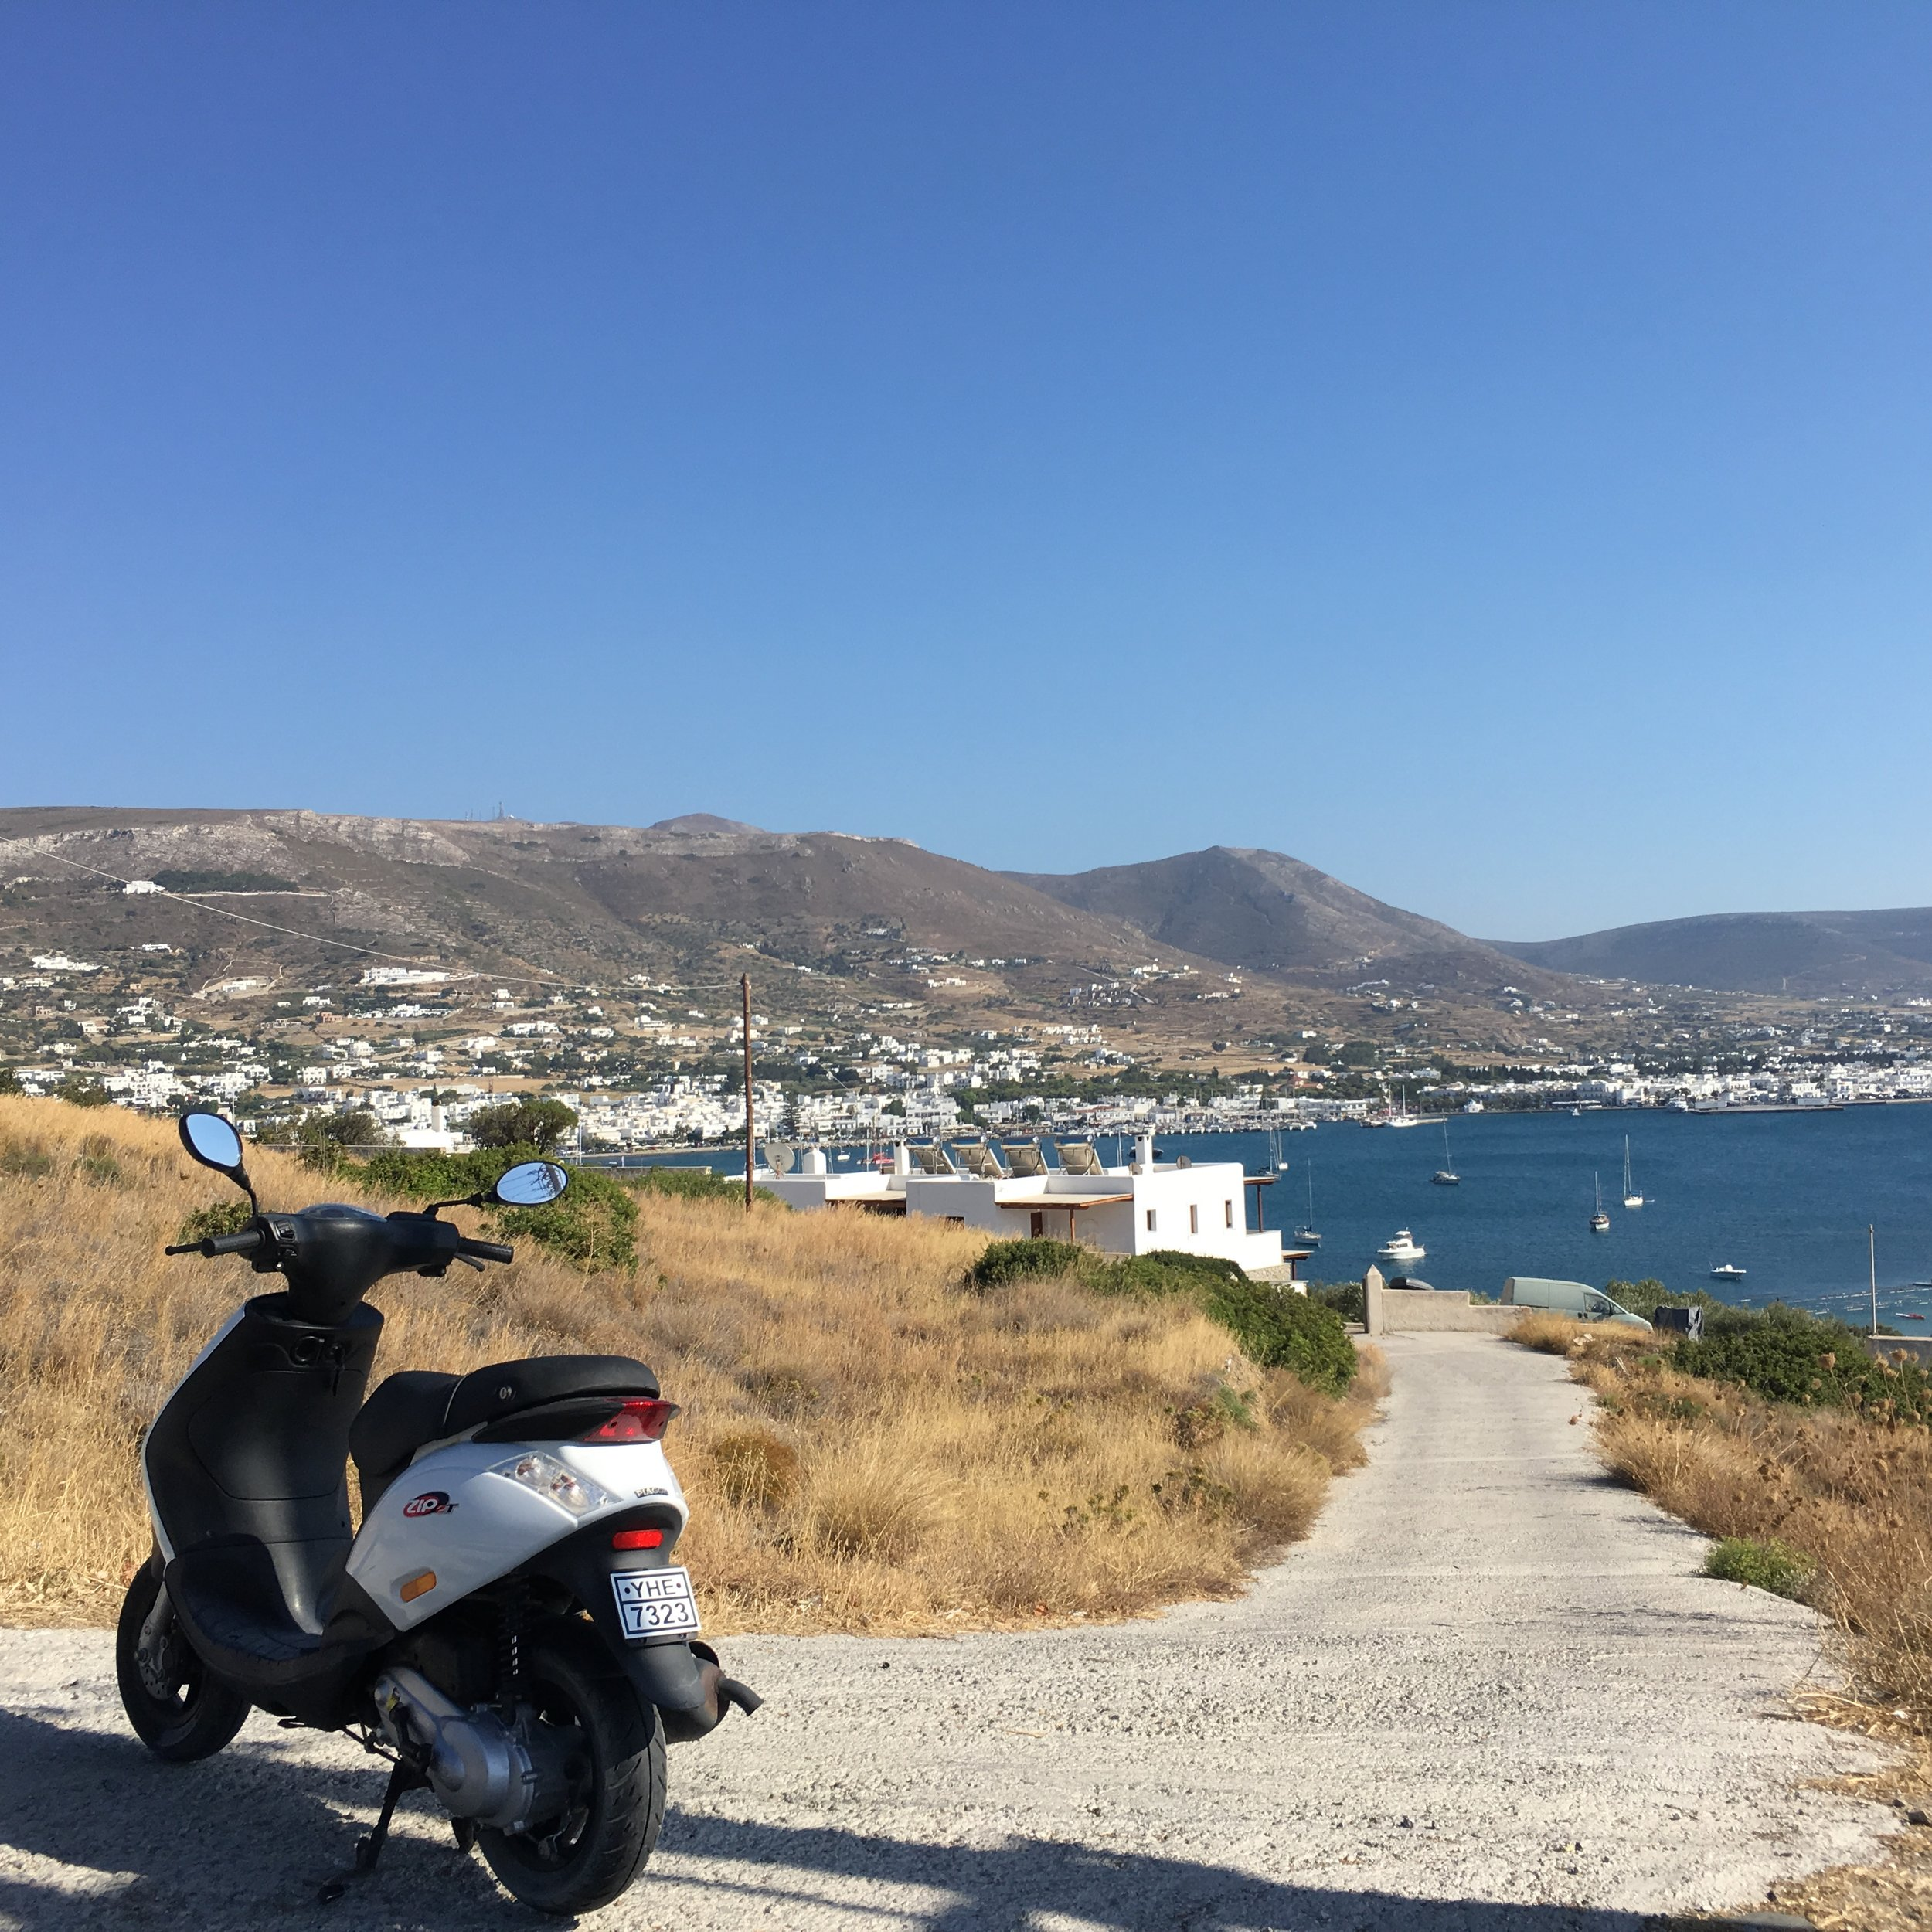 Rent some wheels - Getting around Paros is next to impossible and insanely expensive (I'm pretty sure there are maybe 10 taxis on the island, and each one rakes in thousands a day during peak season). Until Uber arrives in Paros, do yourself a favor and stay independent by renting a moped, car or ATV to get around. Recommend Paros Bike Rentals